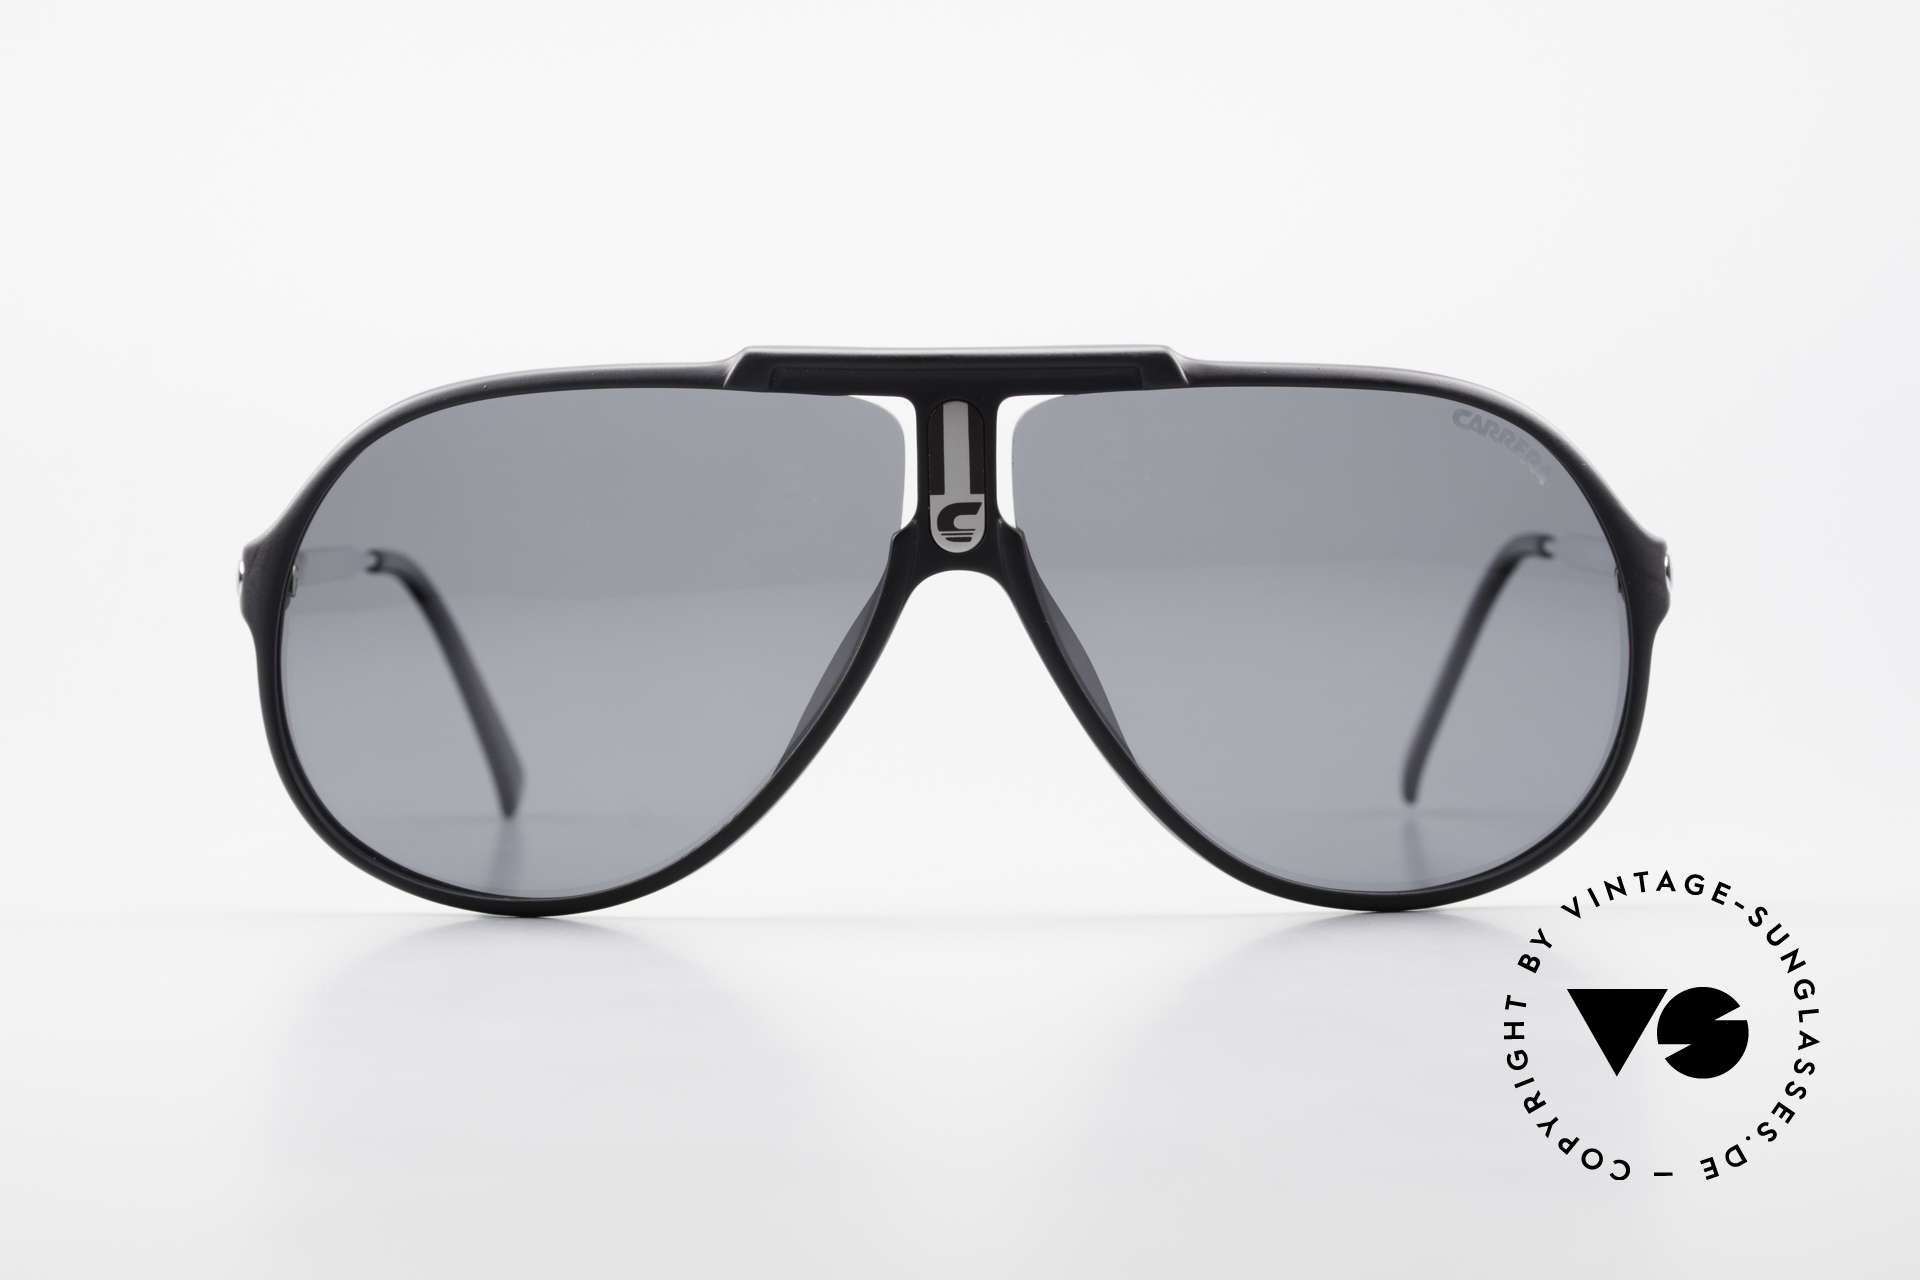 Carrera 5590 80's 90's Polarized Sunglasses, with gray POLARIZED sun lenses; 100% UV protection, Made for Men